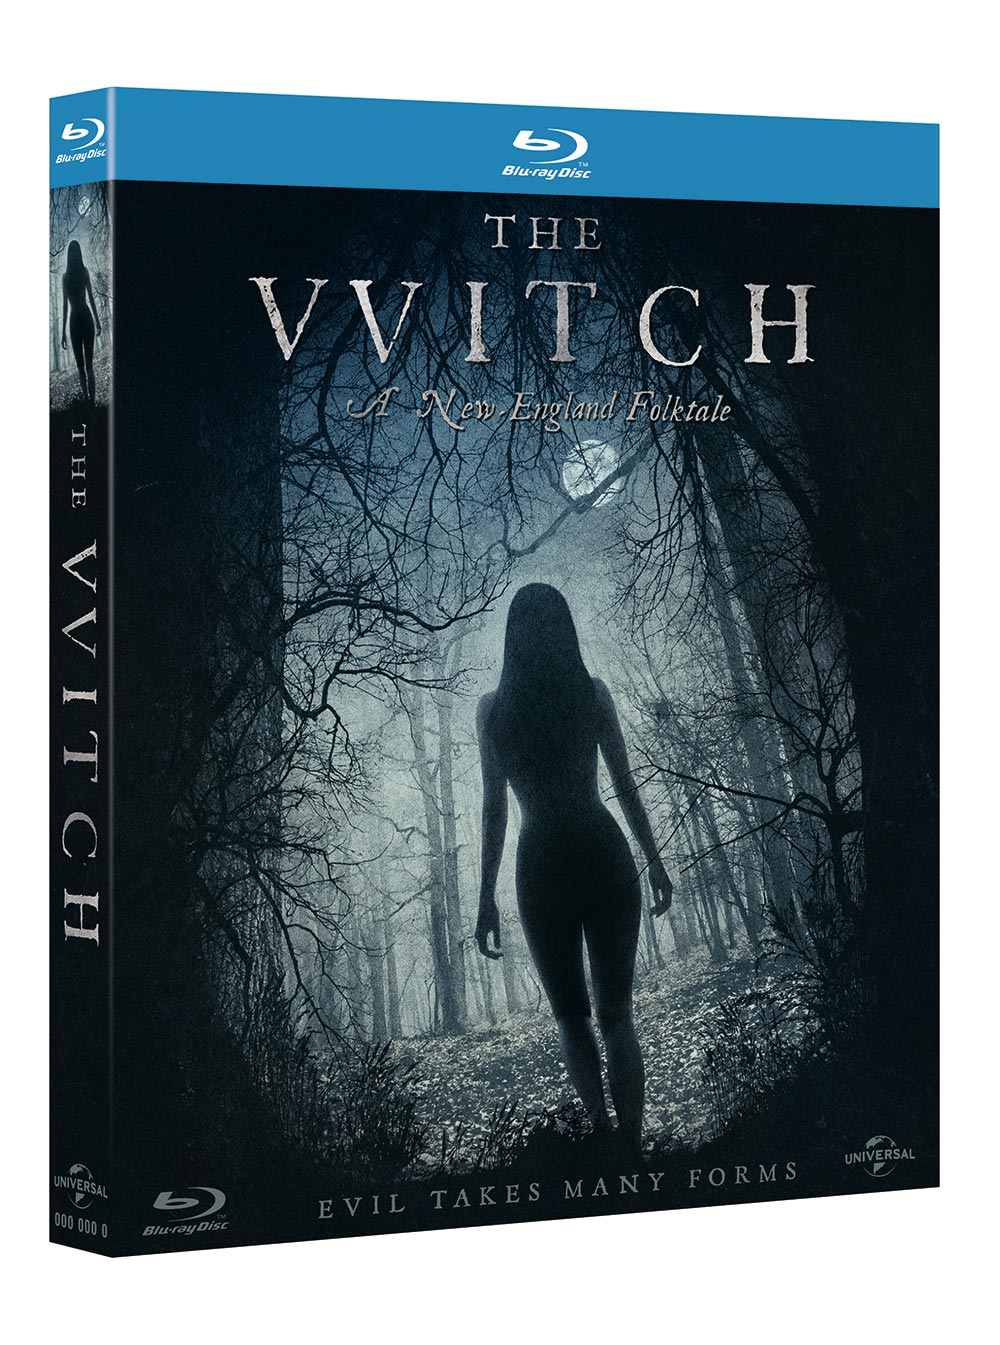 THE WITCH - BLU RAY